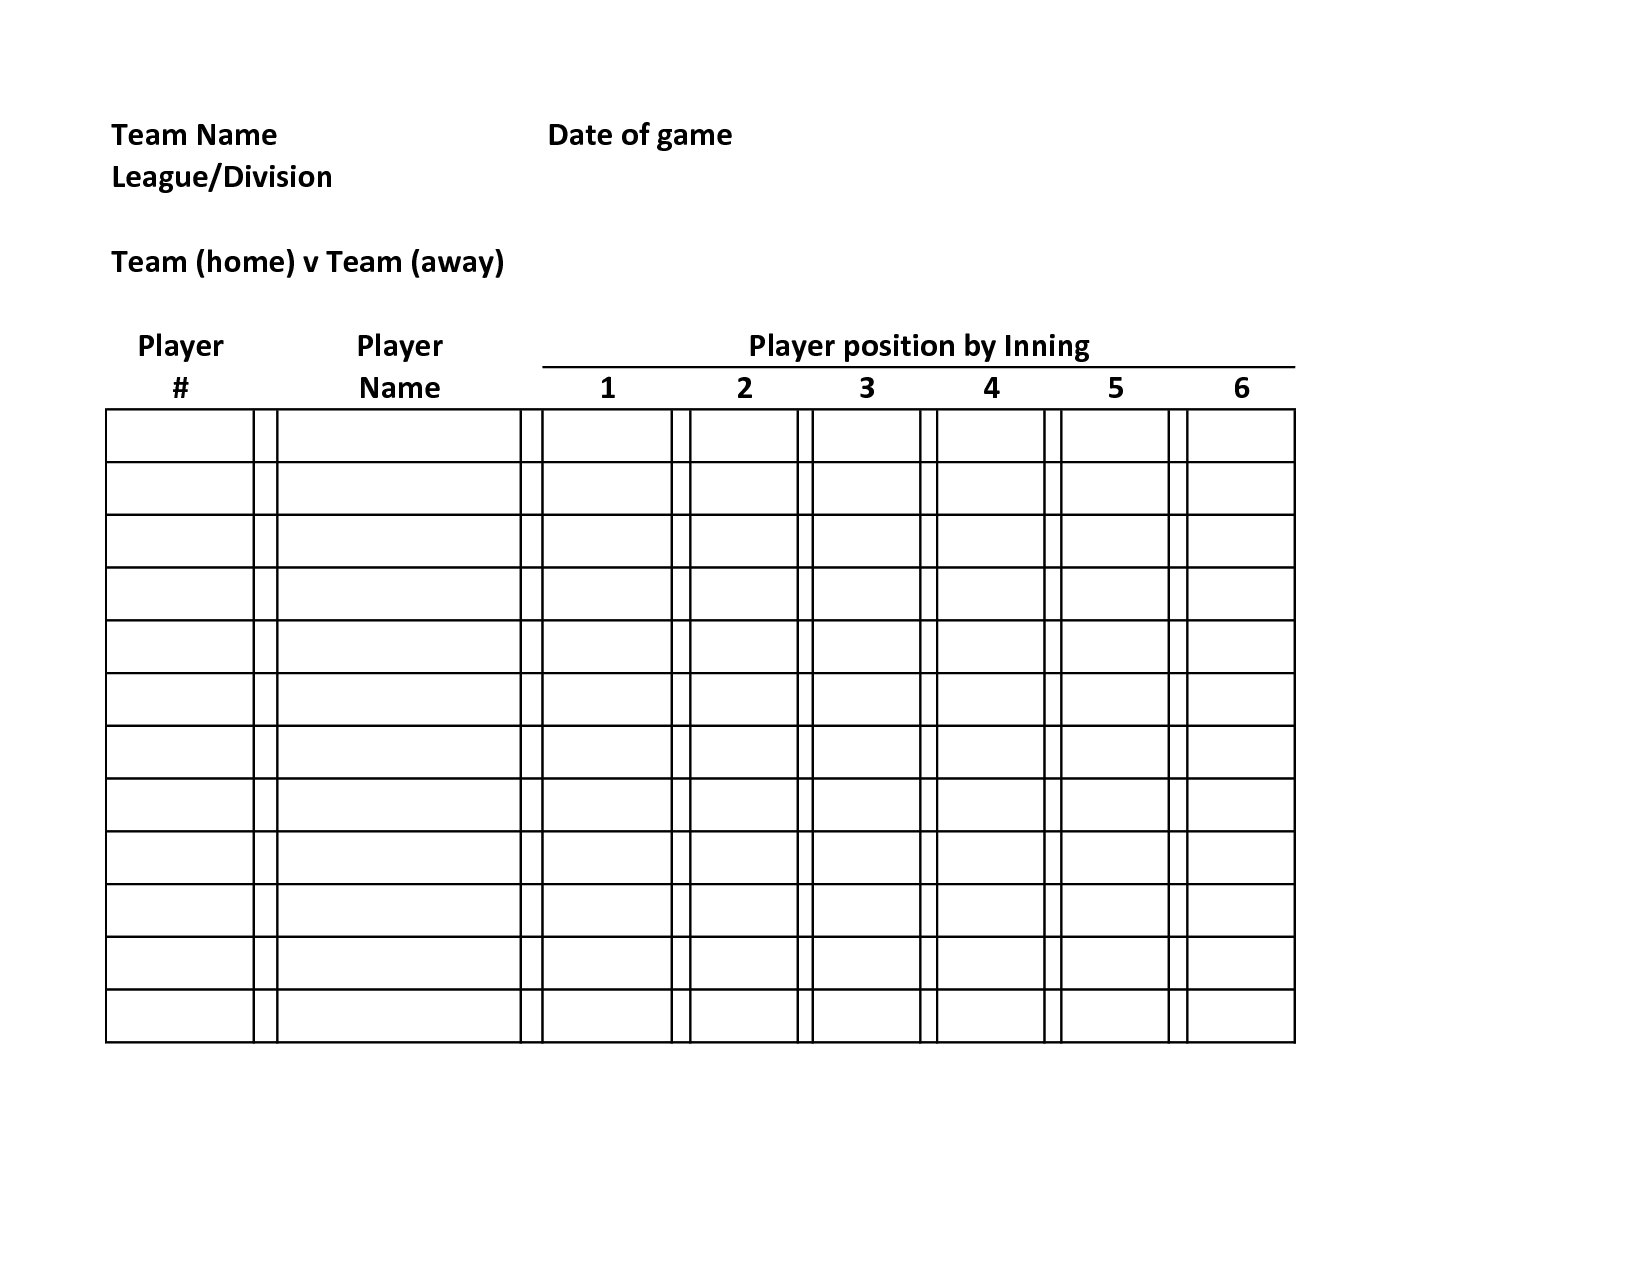 Baseball Lineup Defensive  Baseball Roster Template Team Name Date Intended For Free Baseball Lineup Card Template